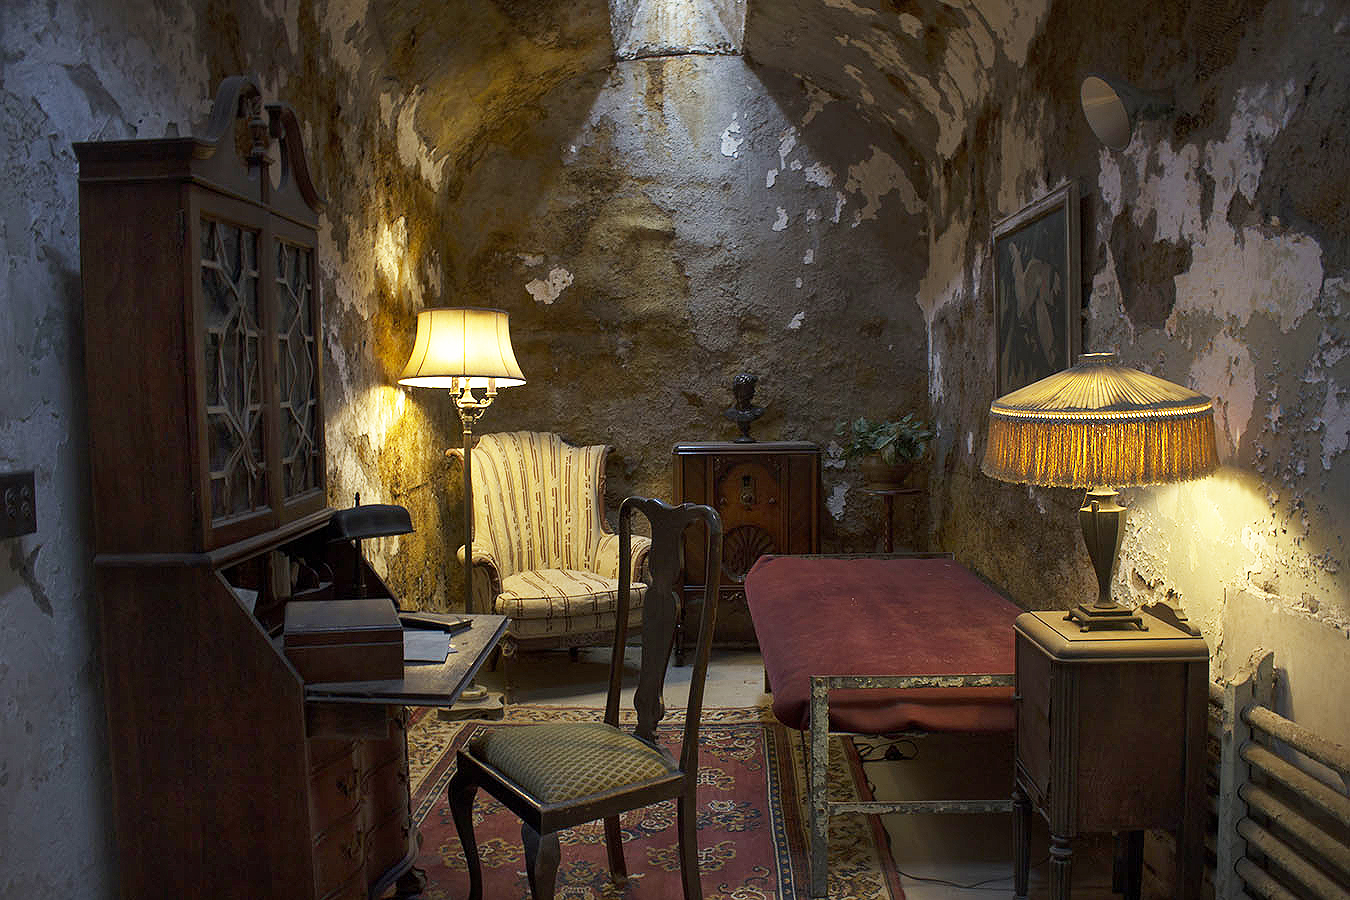 brian_schoenauer_photography_eastern_state_penitentiary_al_capone_cell_recreation_lamp_desk